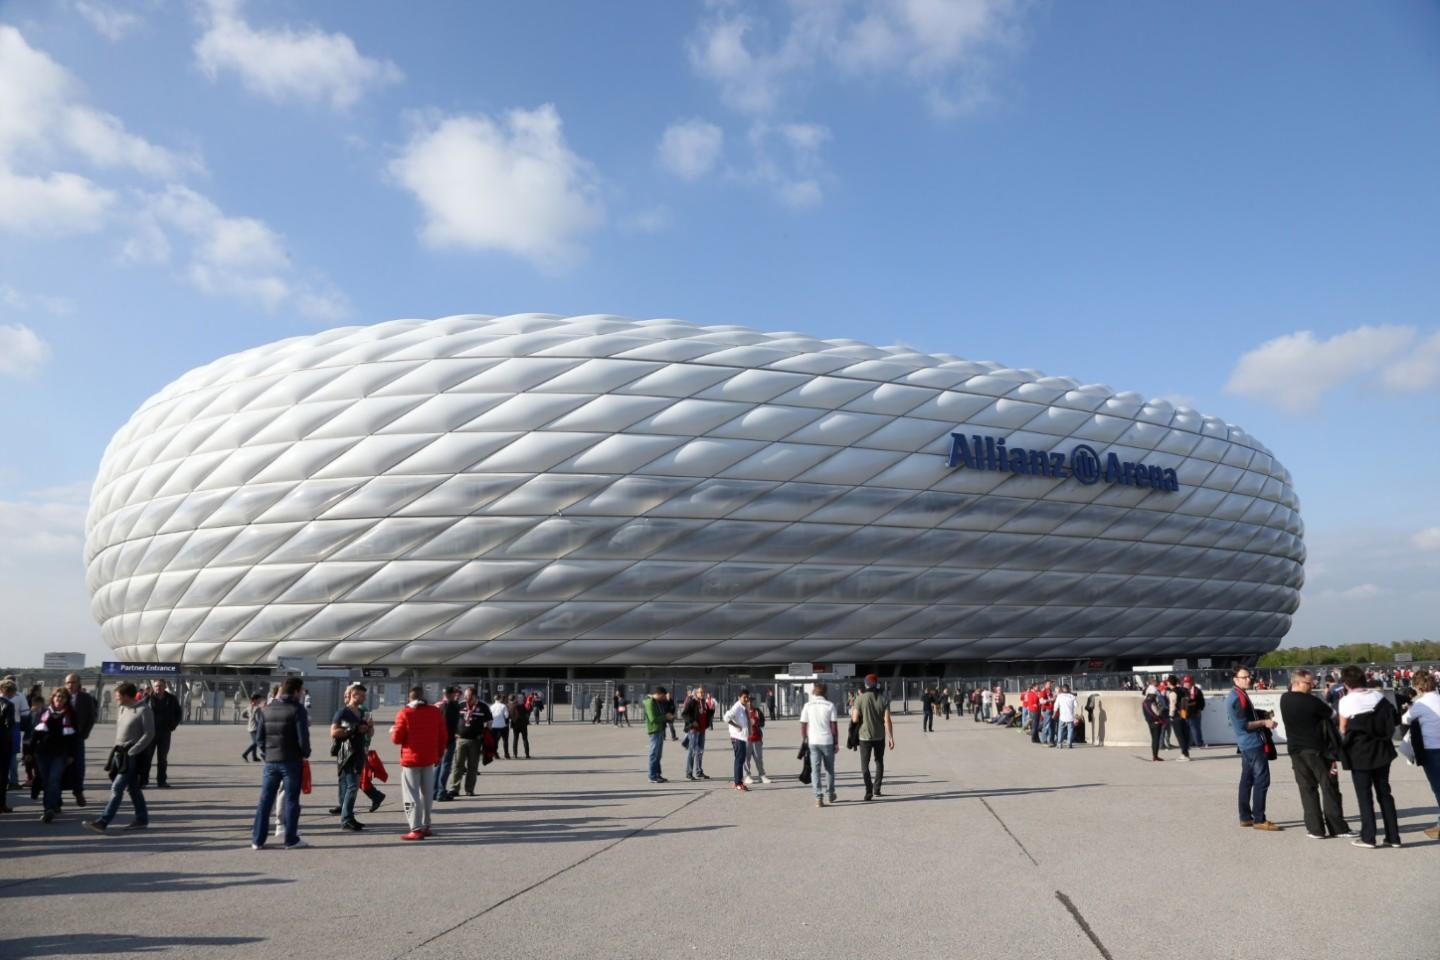 Fc Bayern Munchen Tickets Buy Or Sell Tickets For Fc